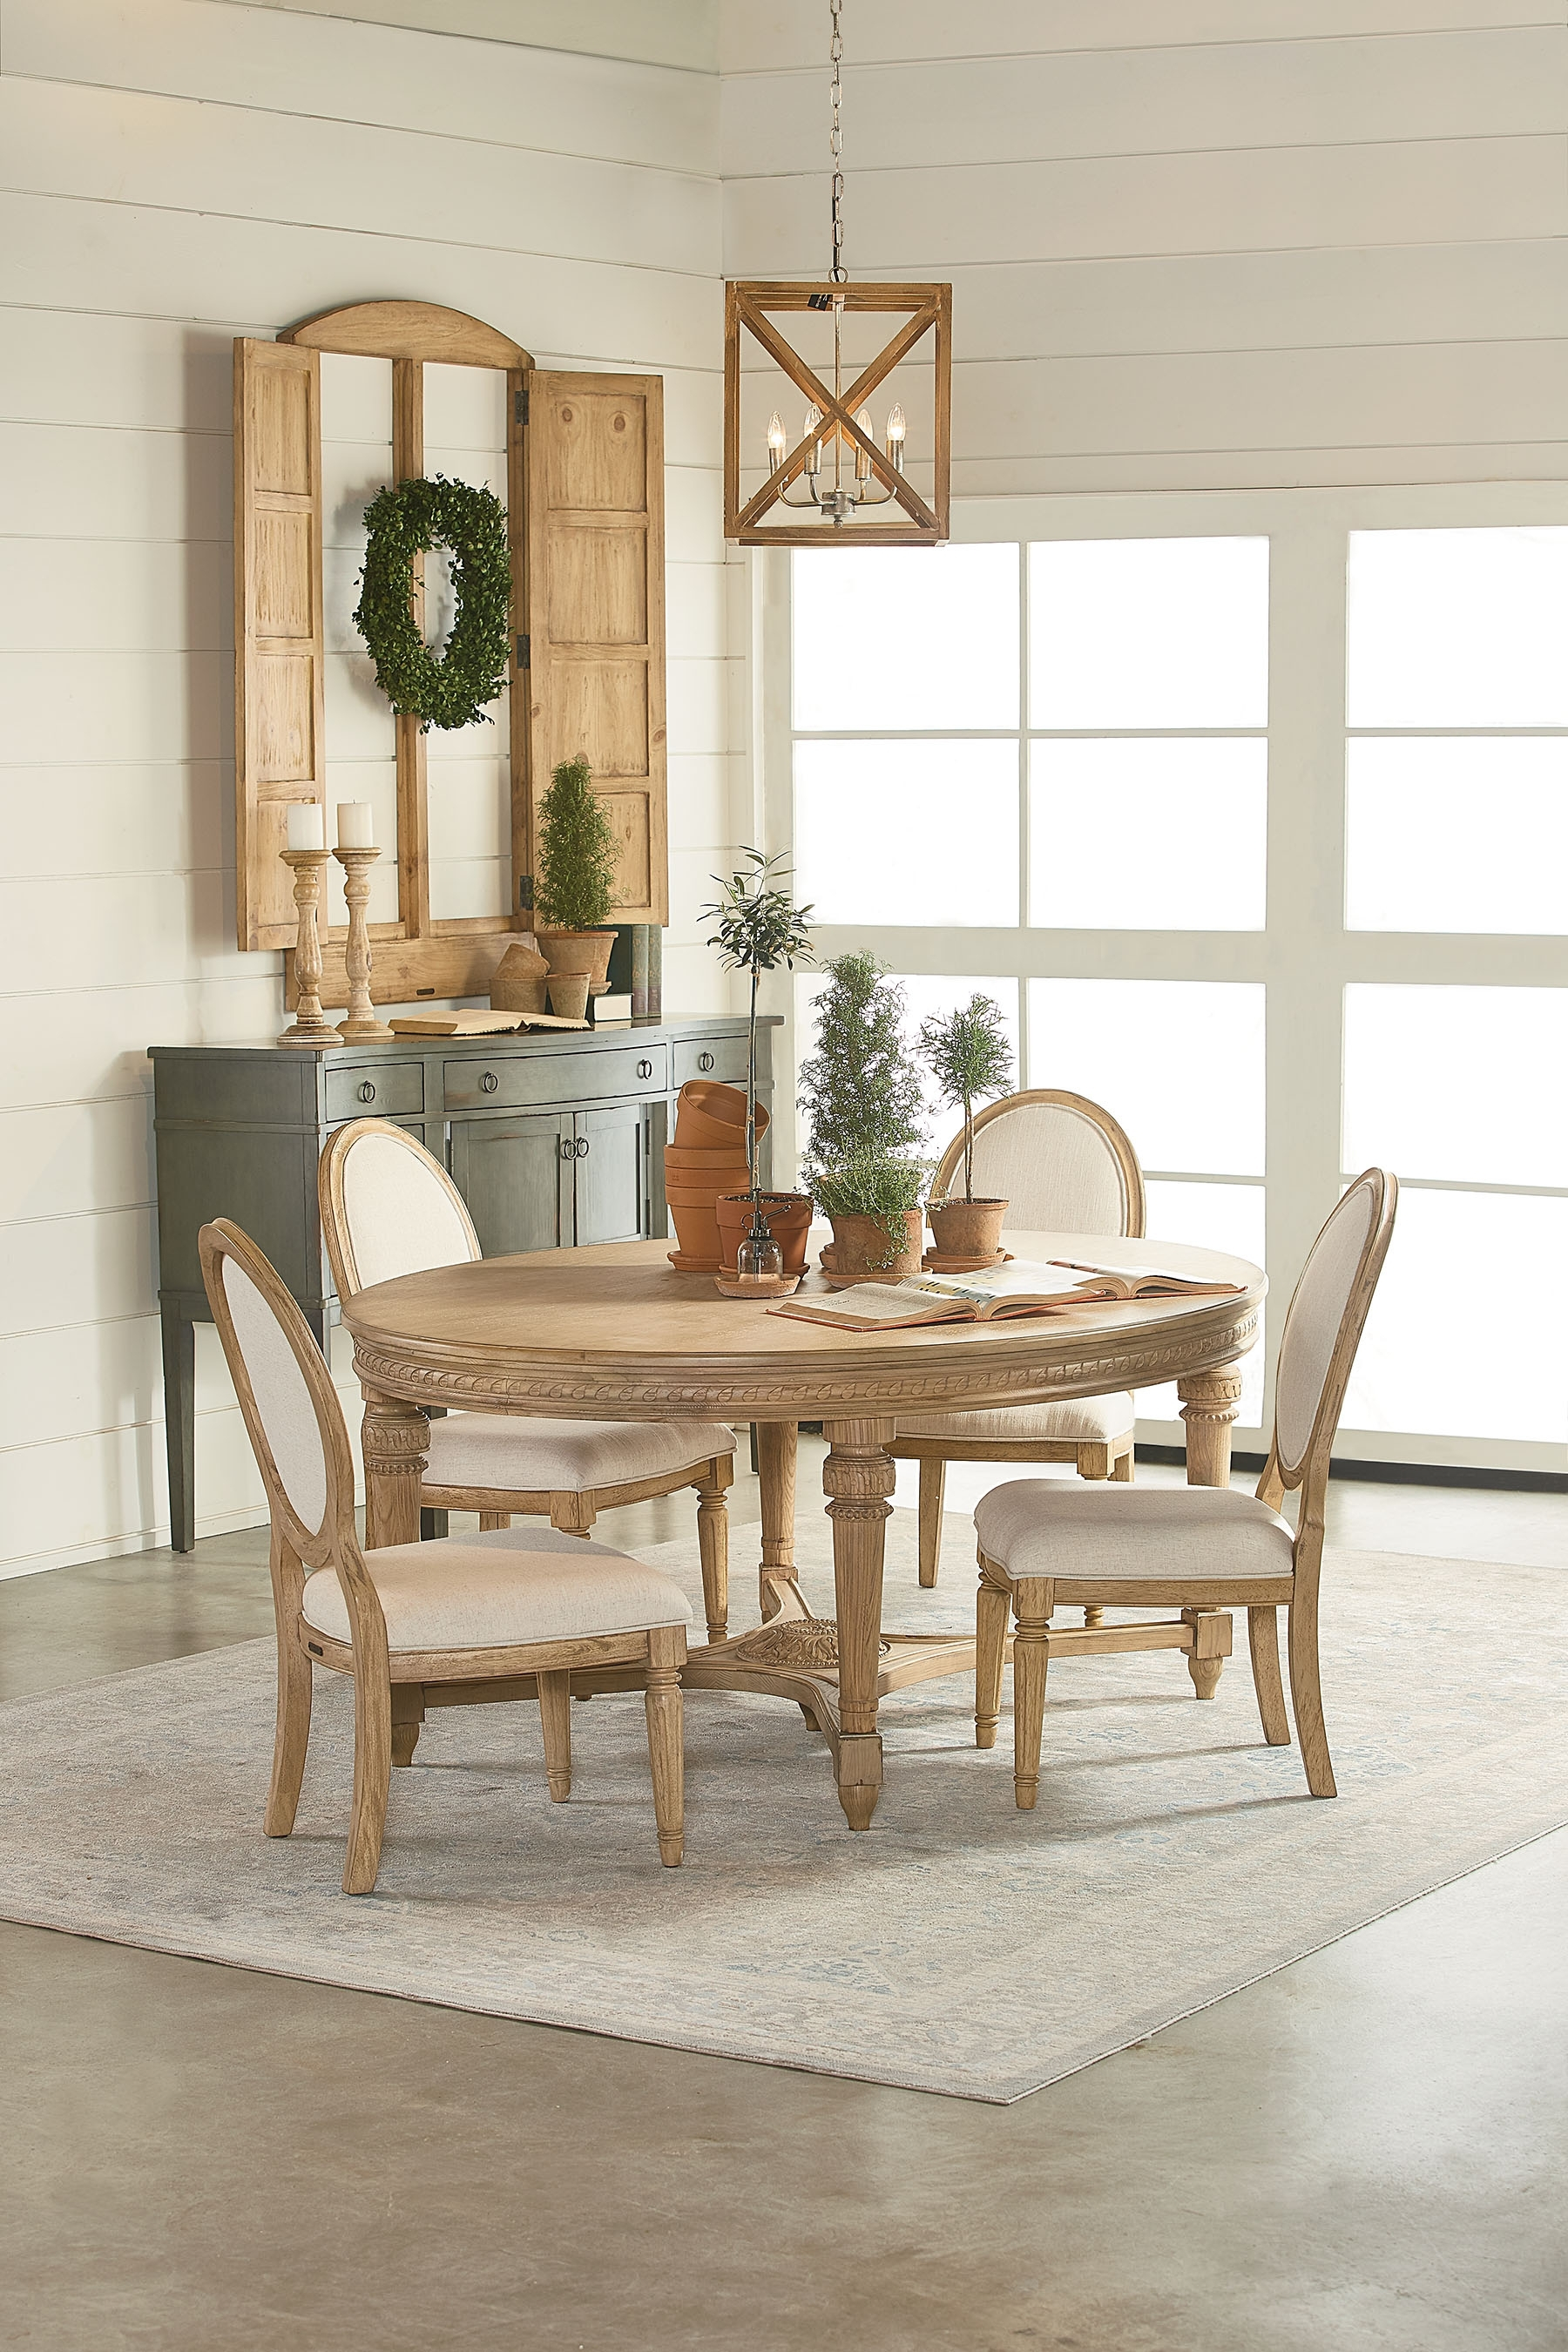 English Country Oval Dining Table – Magnolia Home In 2018 Magnolia Home English Country Oval Dining Tables (Image 8 of 20)